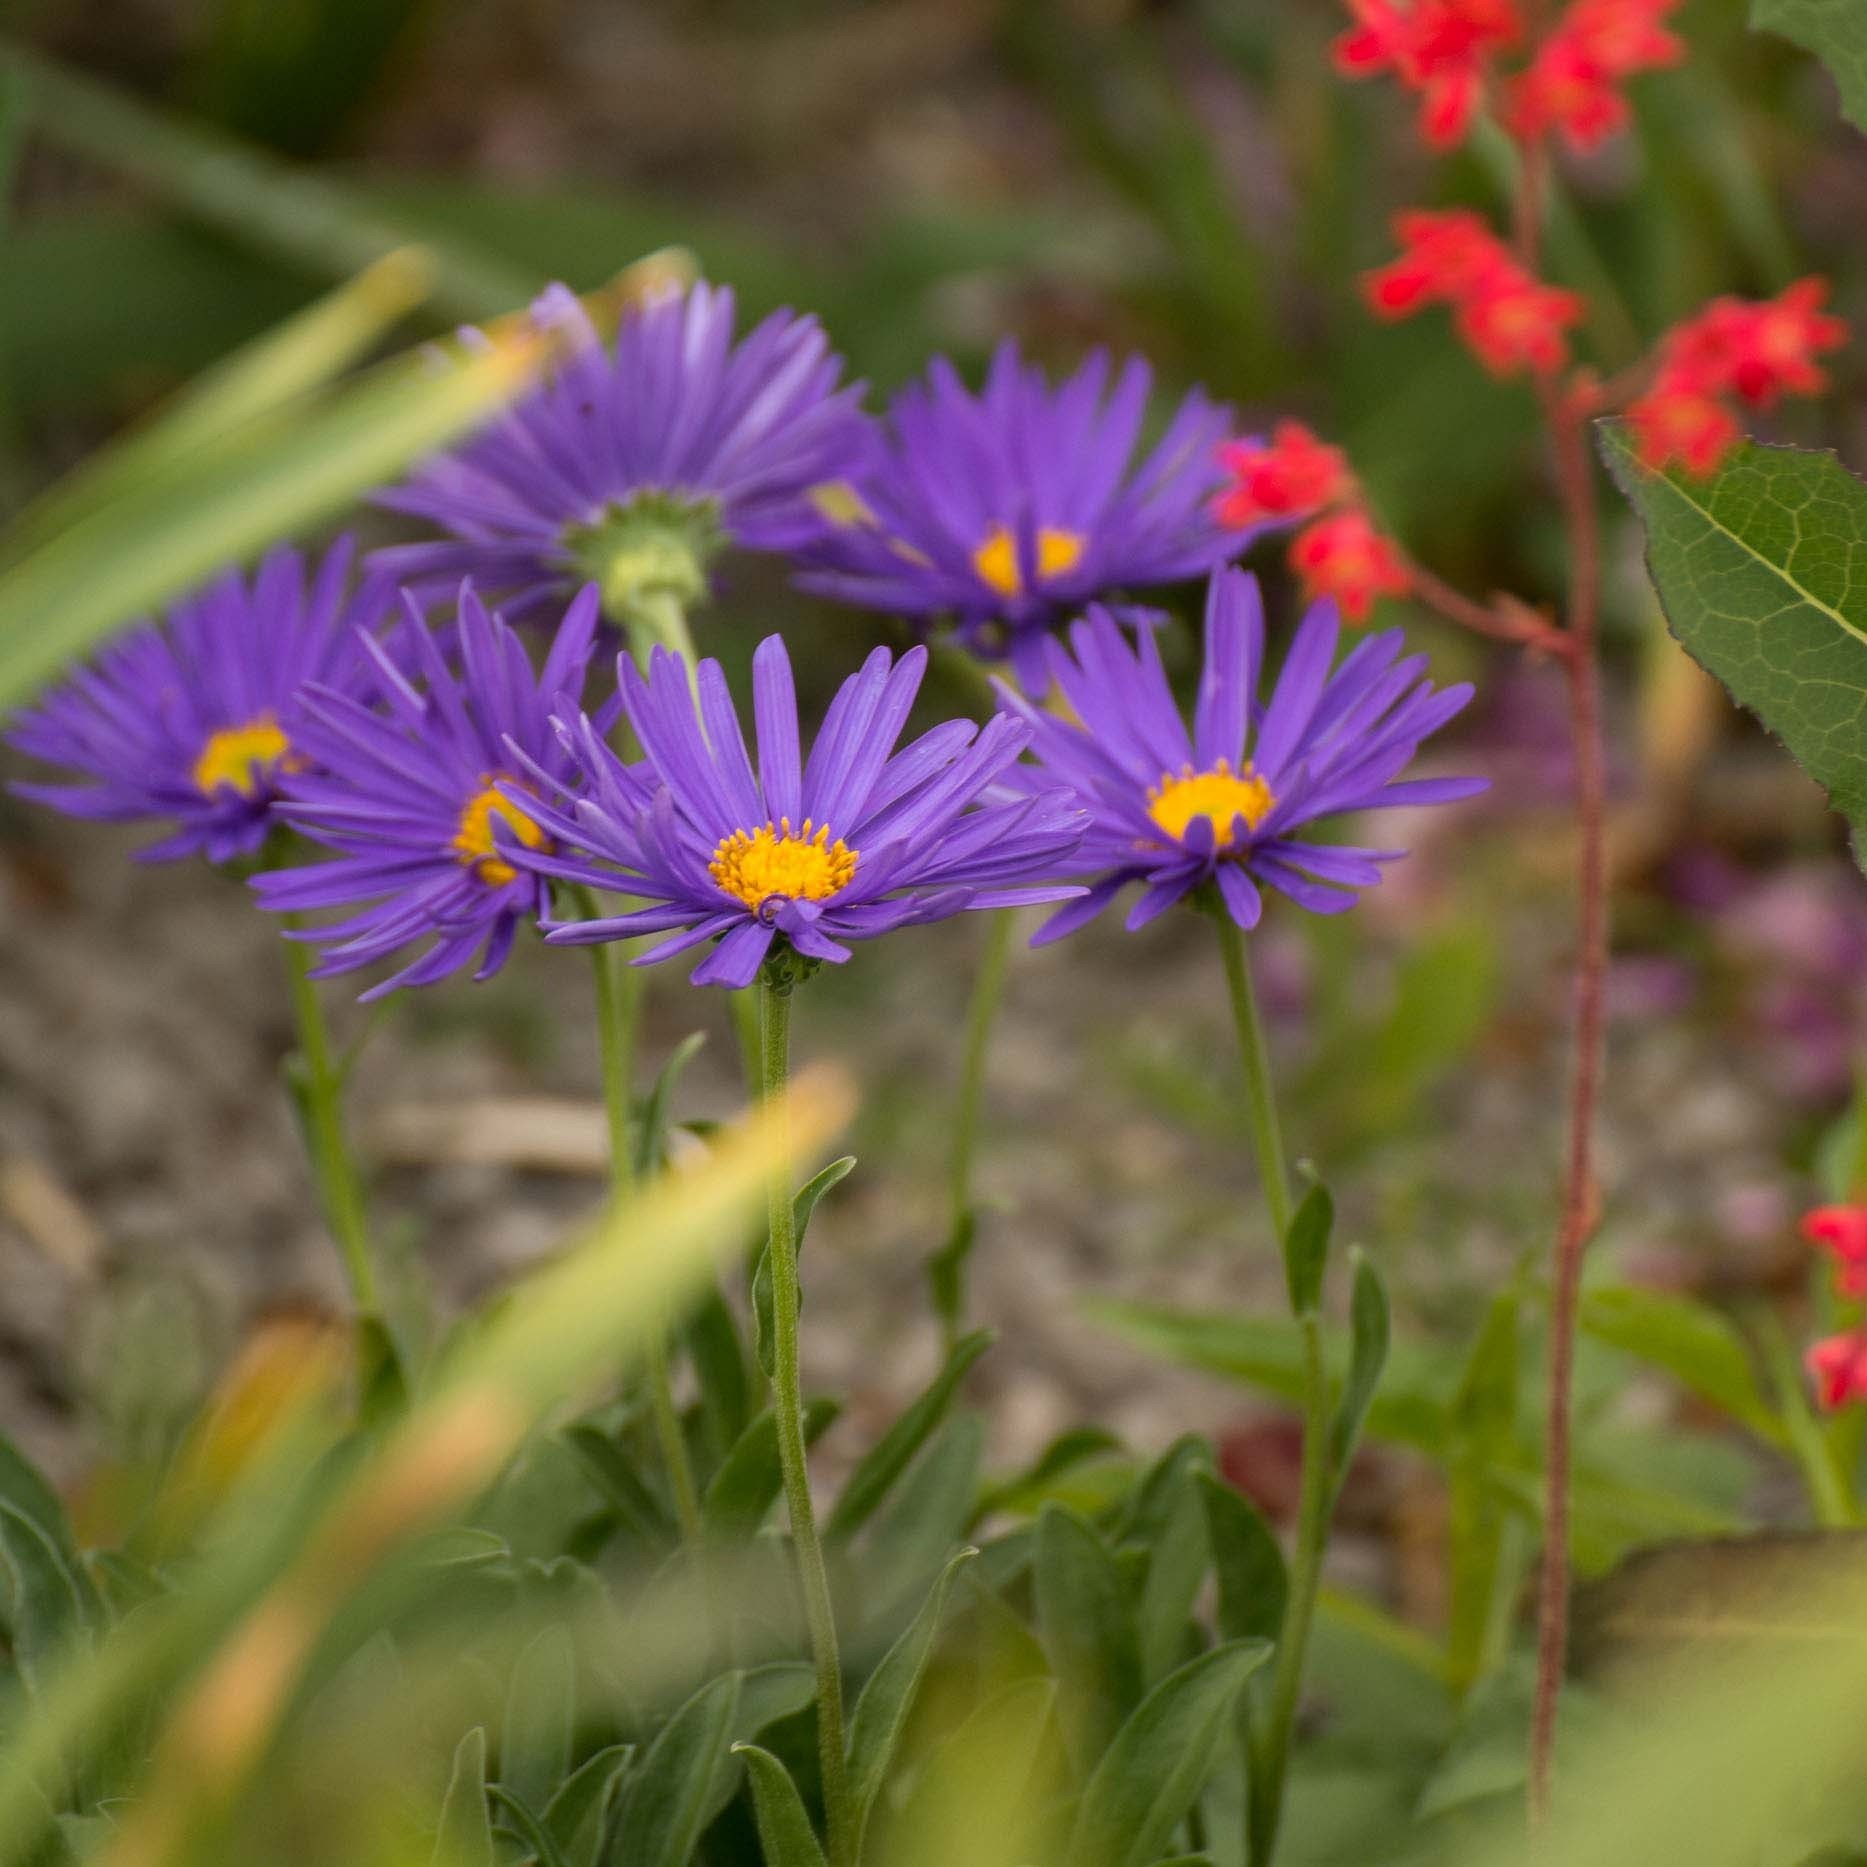 Aster alpinus Blue Beauty - Aster des Alpes bleu clair